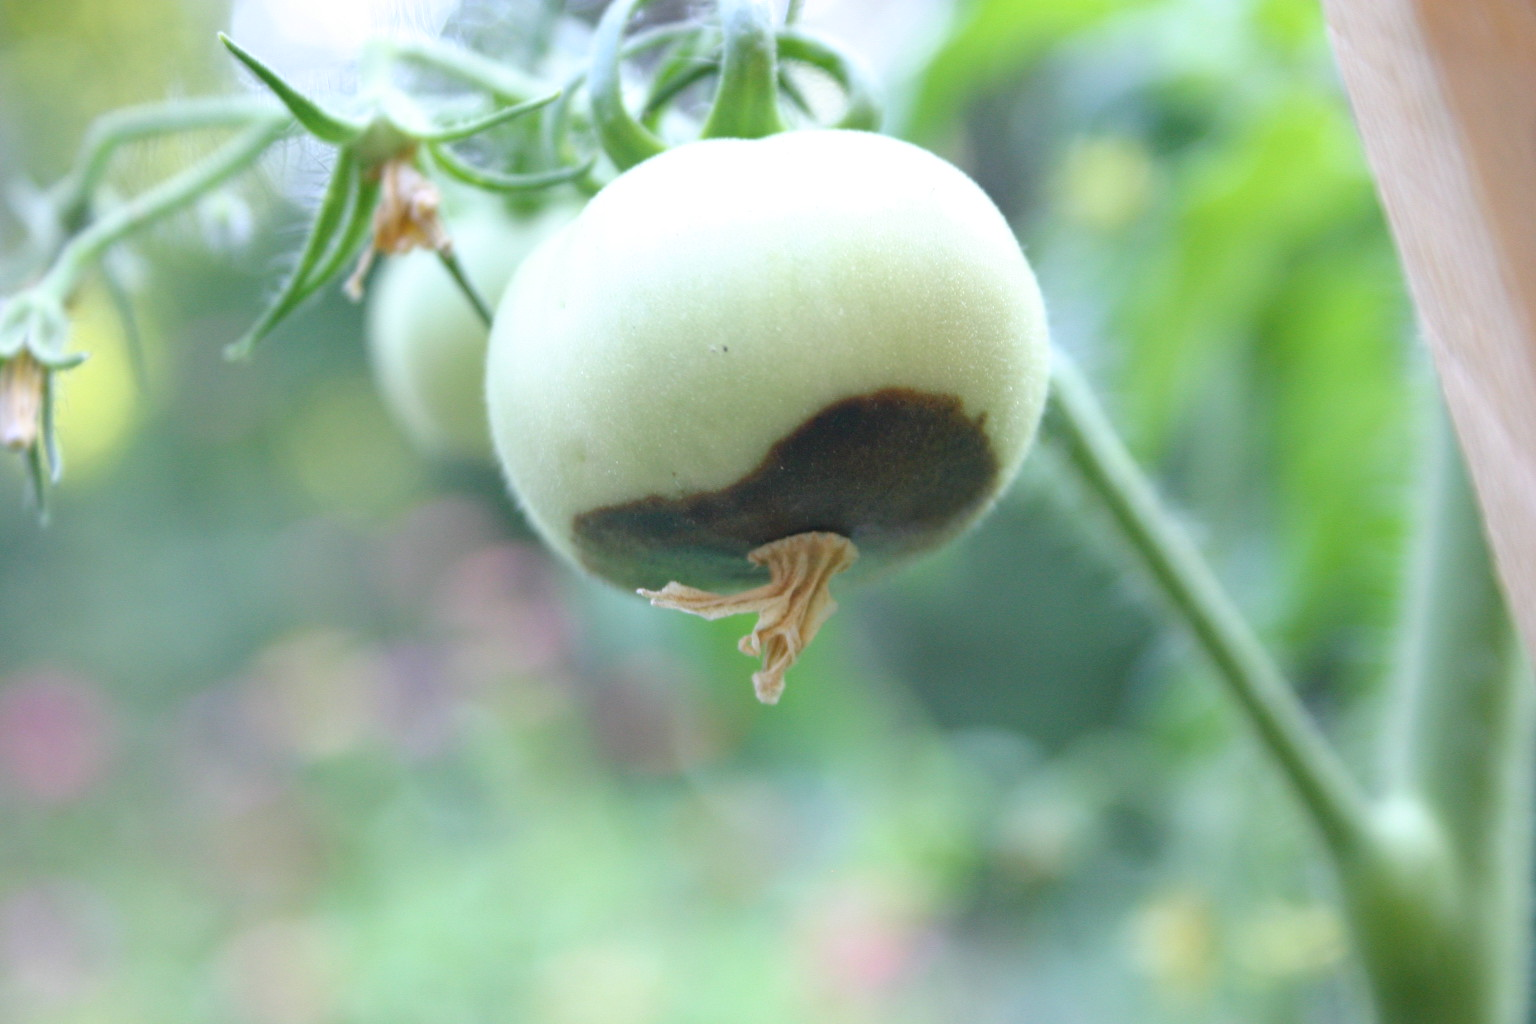 Blossom-end rot, which manifests in the first few weeks of growth after tomato flowers are pollinated, causes black, rotted areas on the blossom end of the fruit, opposite the stem.